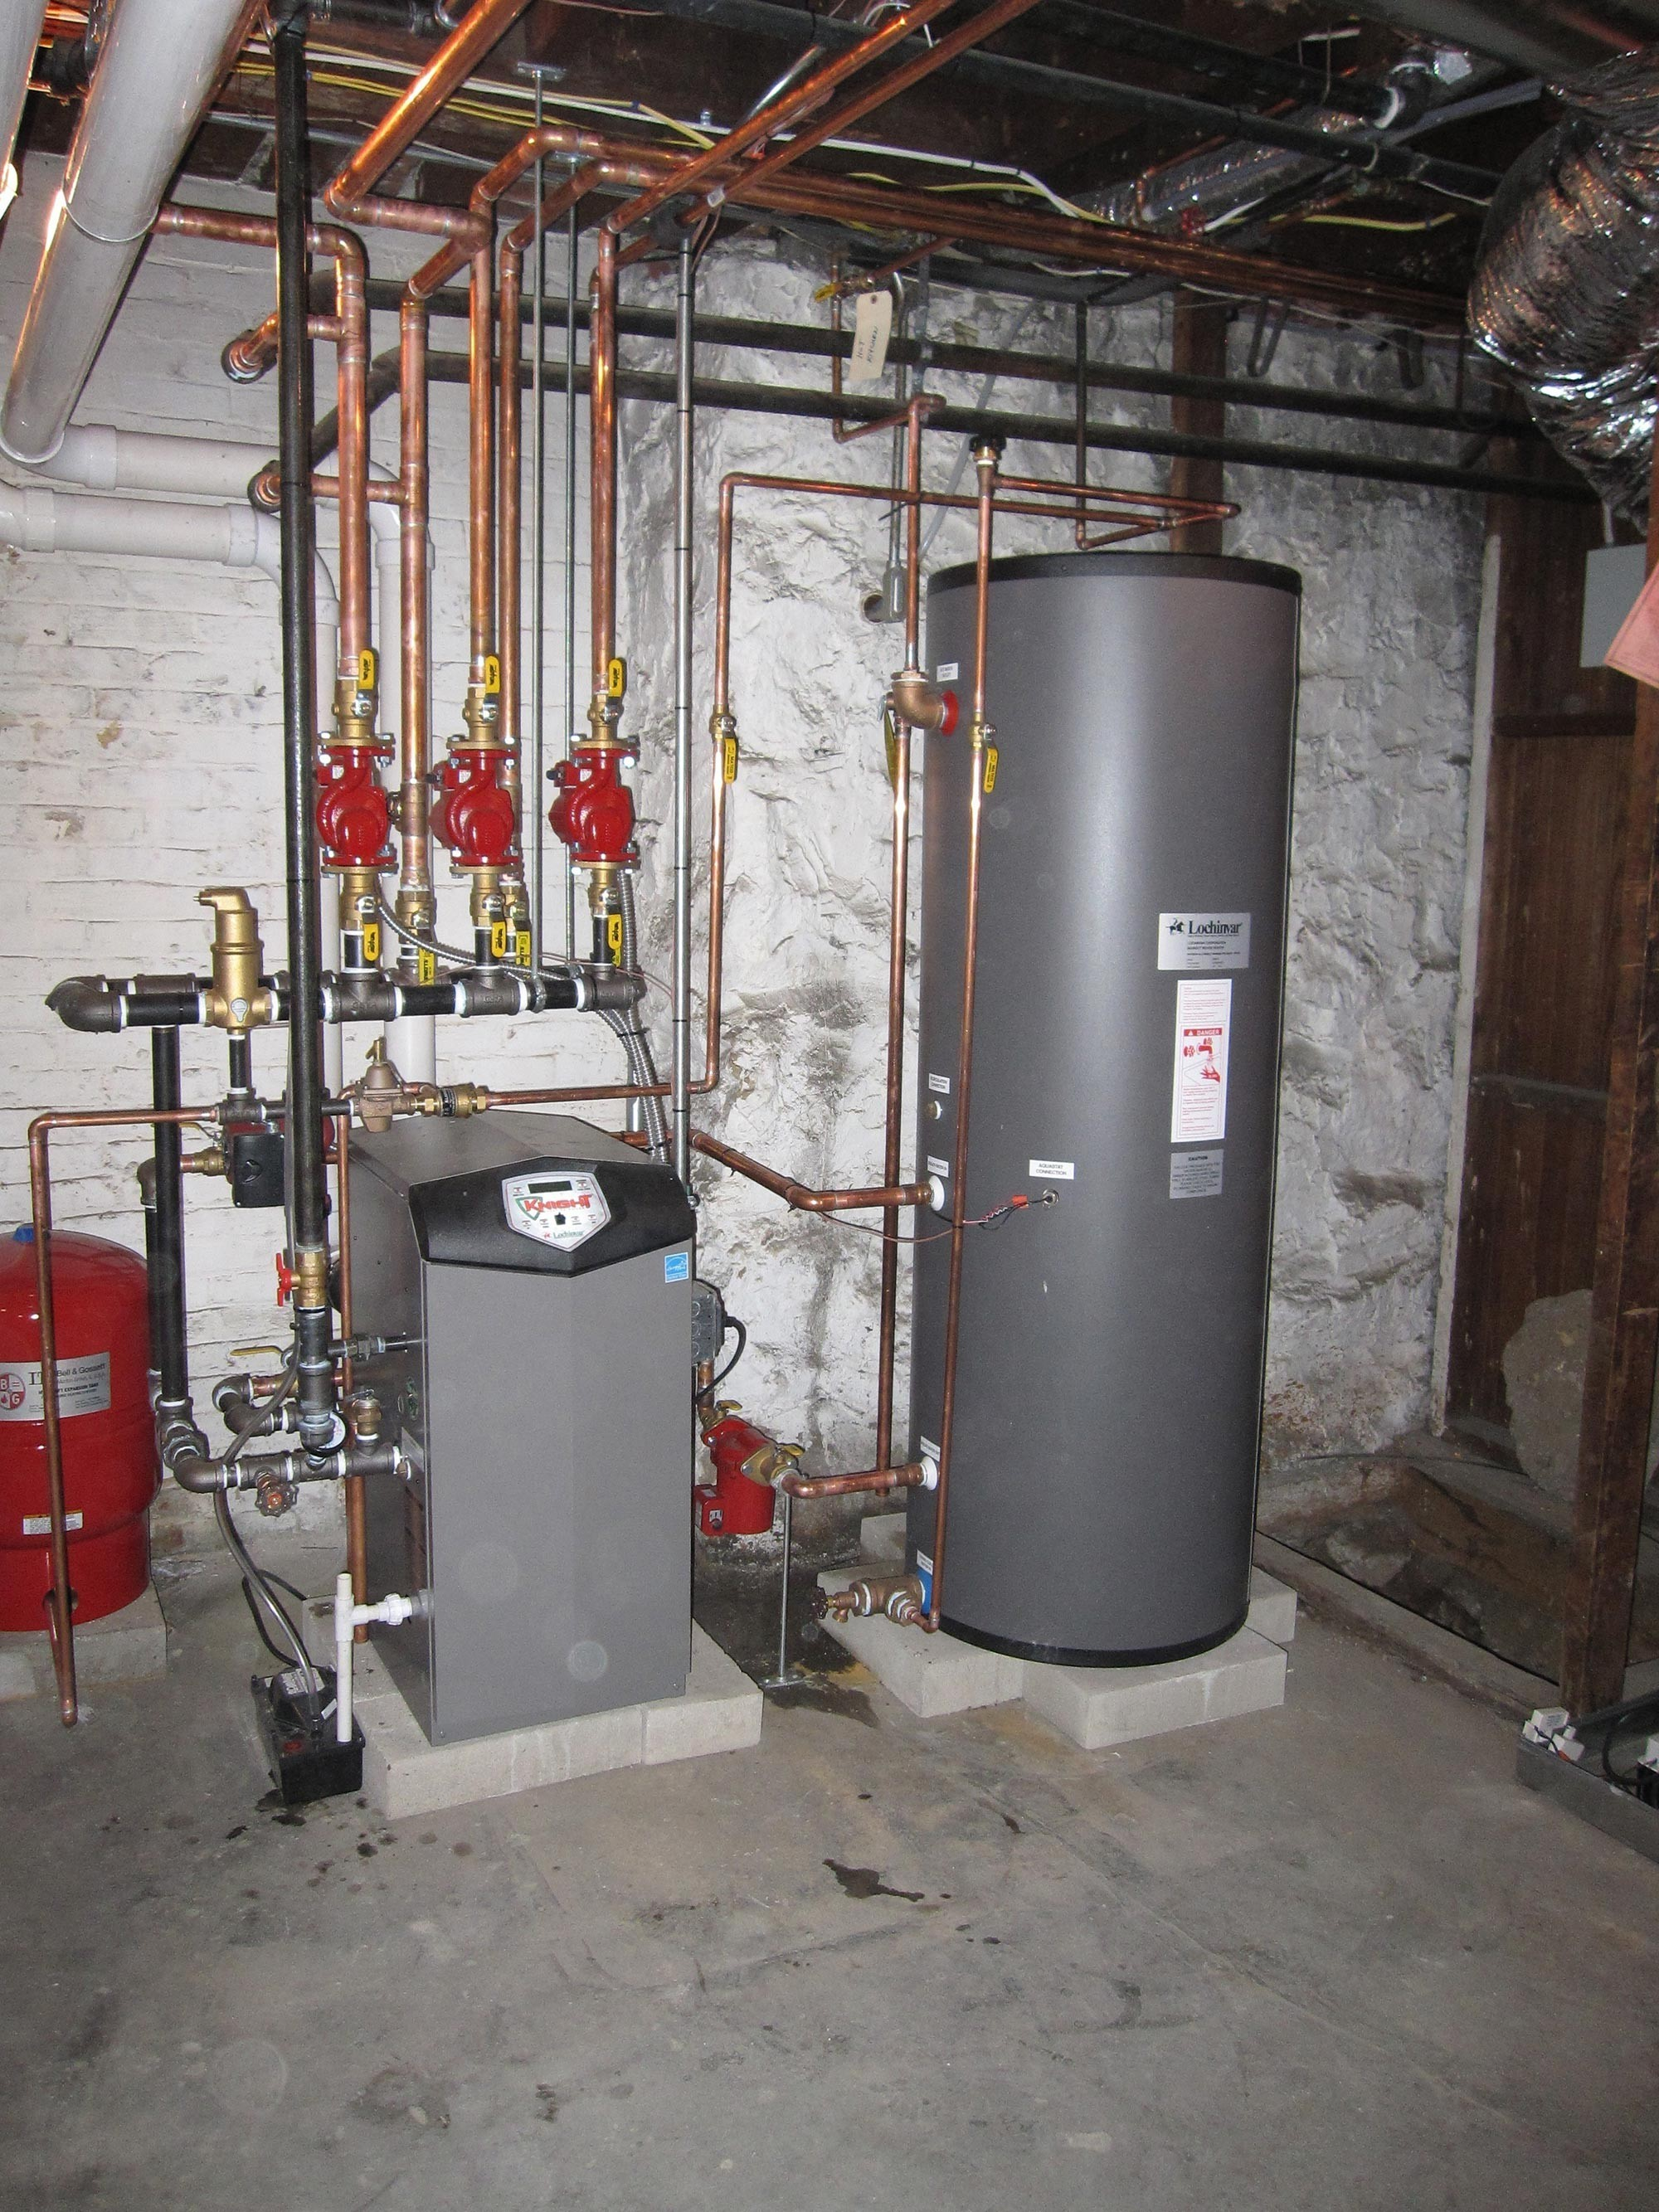 High Efficiency Gas Boiler With Hot Water Tank Amp High